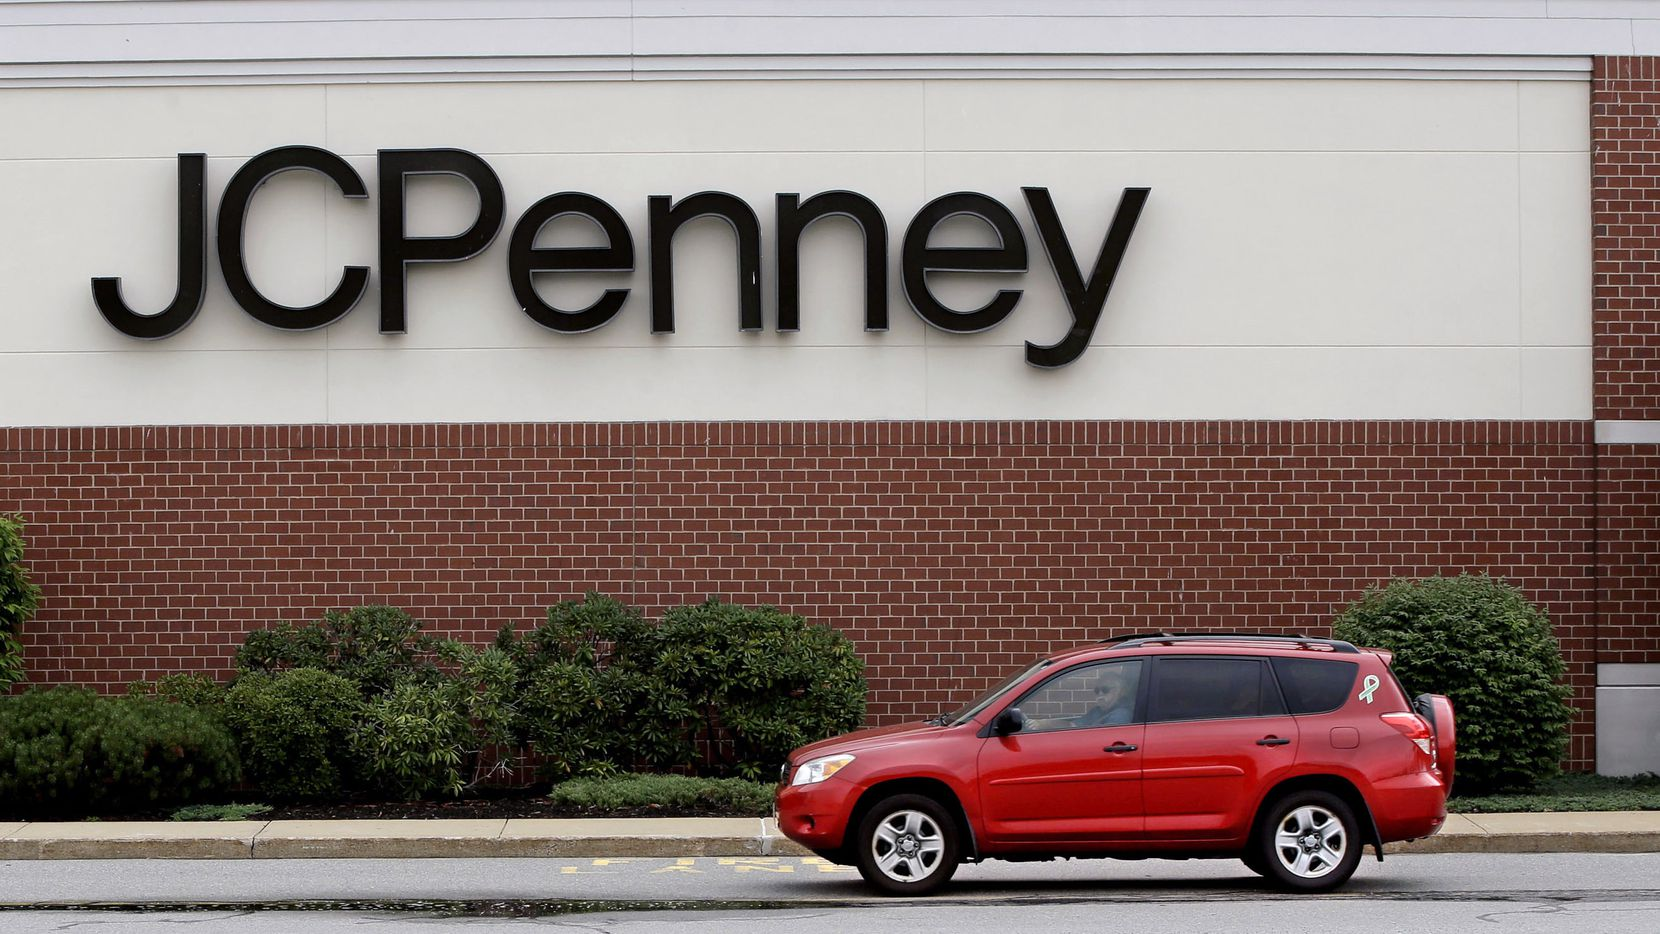 Photo taken on Friday, July 10, 2015 as a car drives through an empty J. C. Penney department store parking lot at the Hanover Mall in Hanover, Mass.  This store closed in April 2015. (AP Photo/Stephan Savoia)